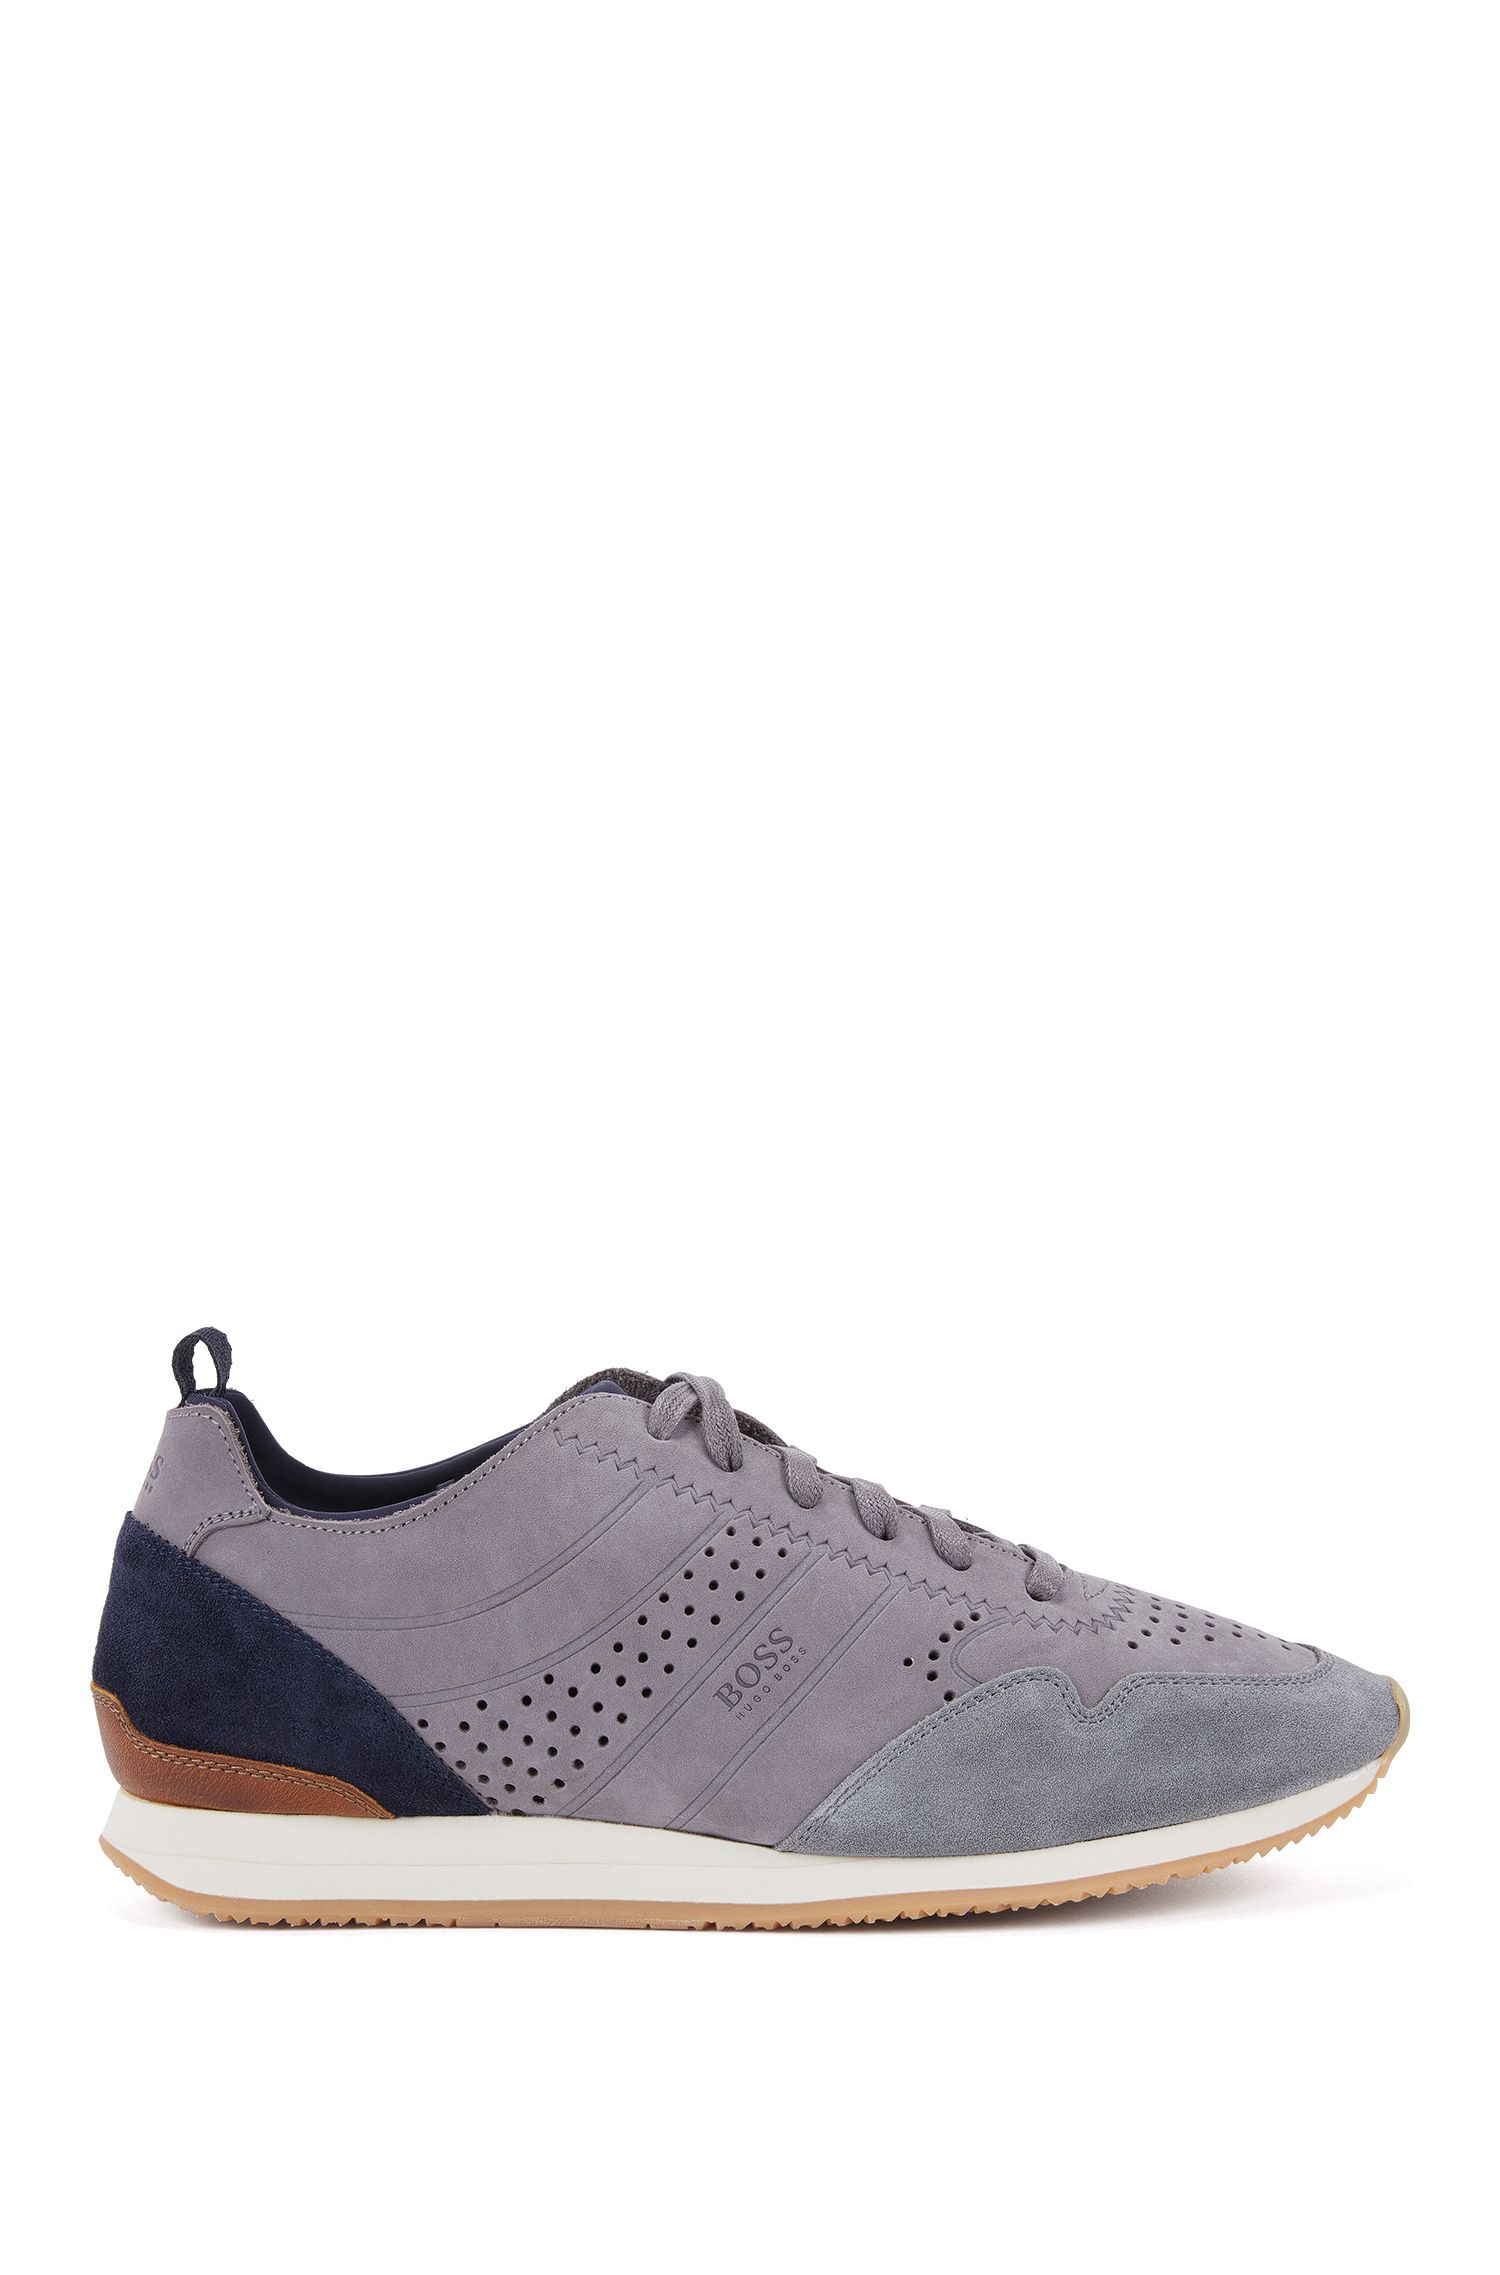 Lace-up trainers in soft nubuck